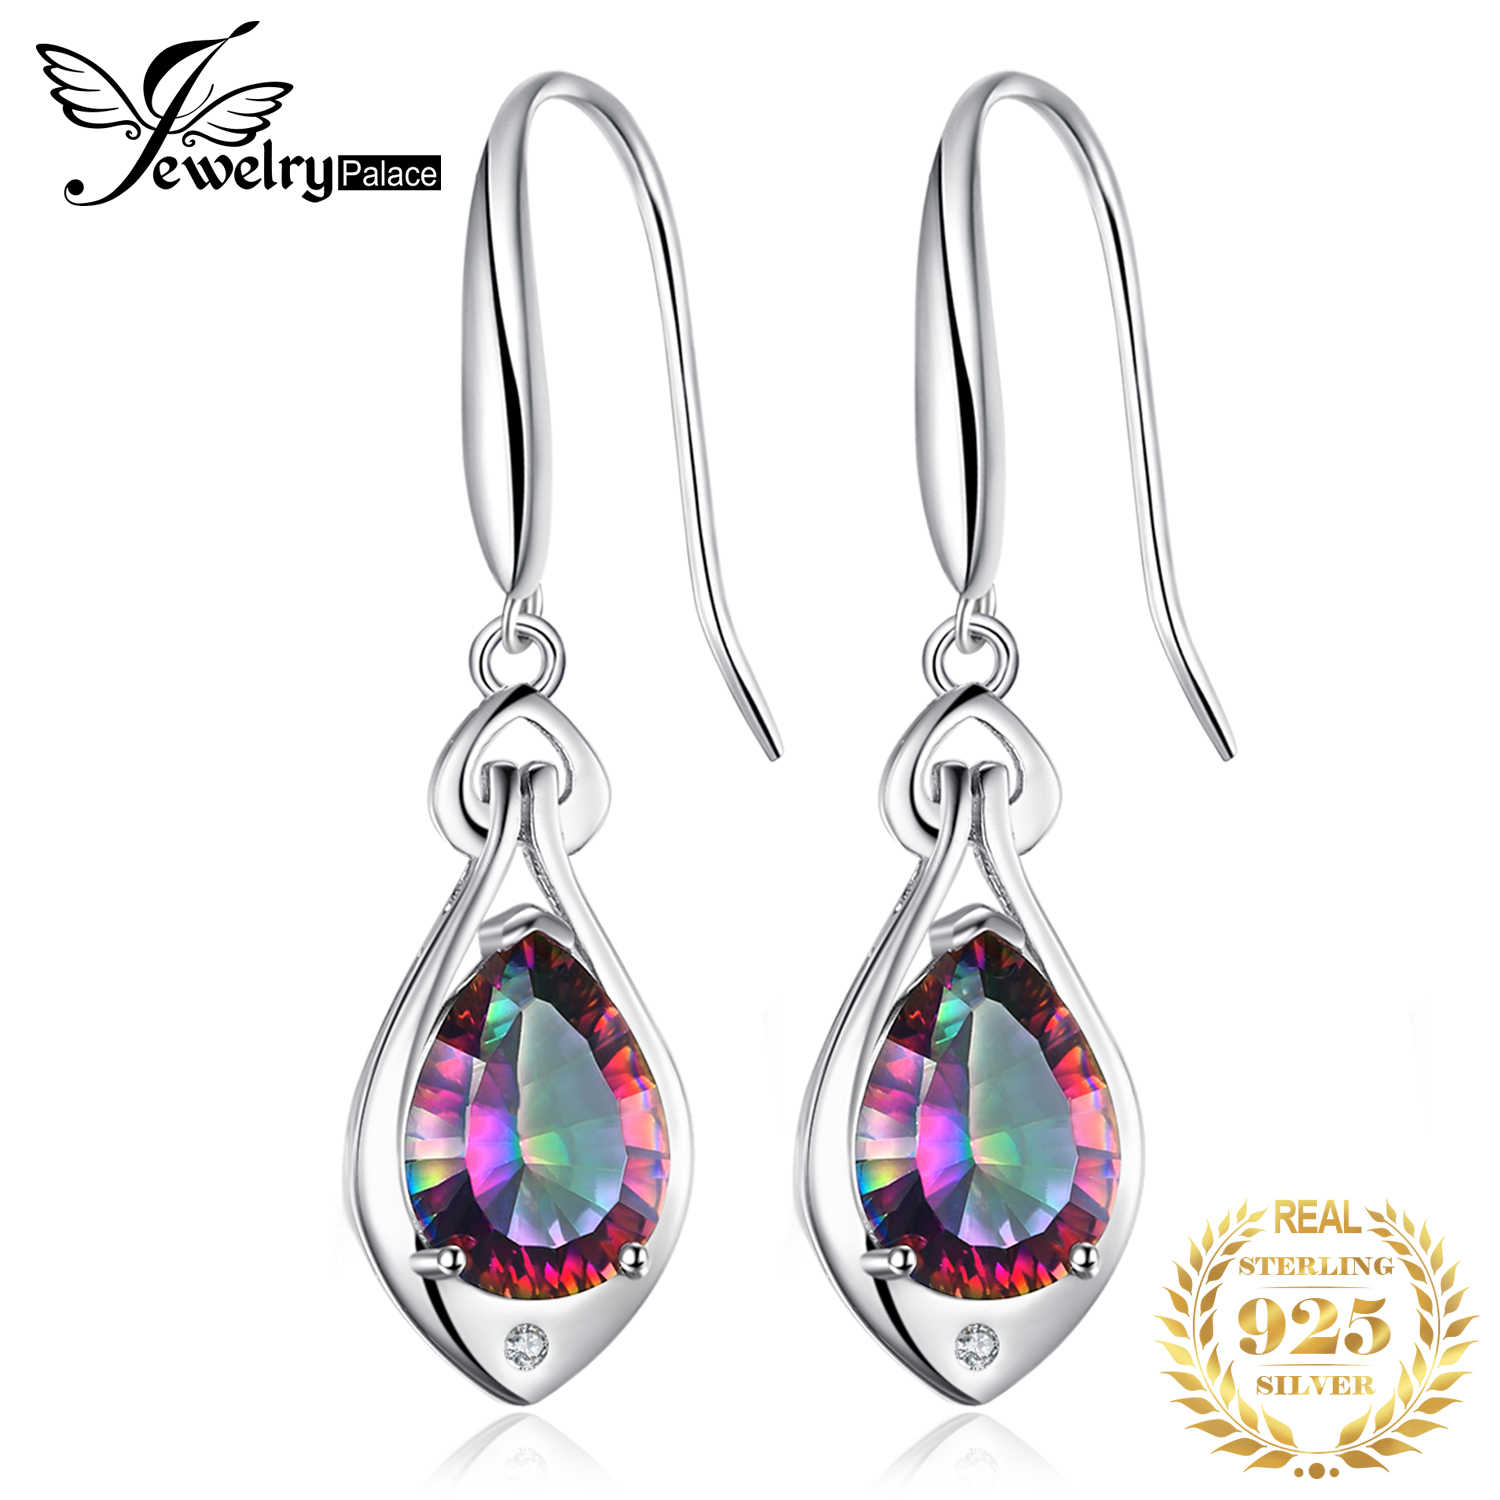 JewelryPalace 7ct Genuine Rainbow Mystic Topaz Drop Earring 925 Sterling Silver Earrings Women Korean Earings Fashion Jewelry